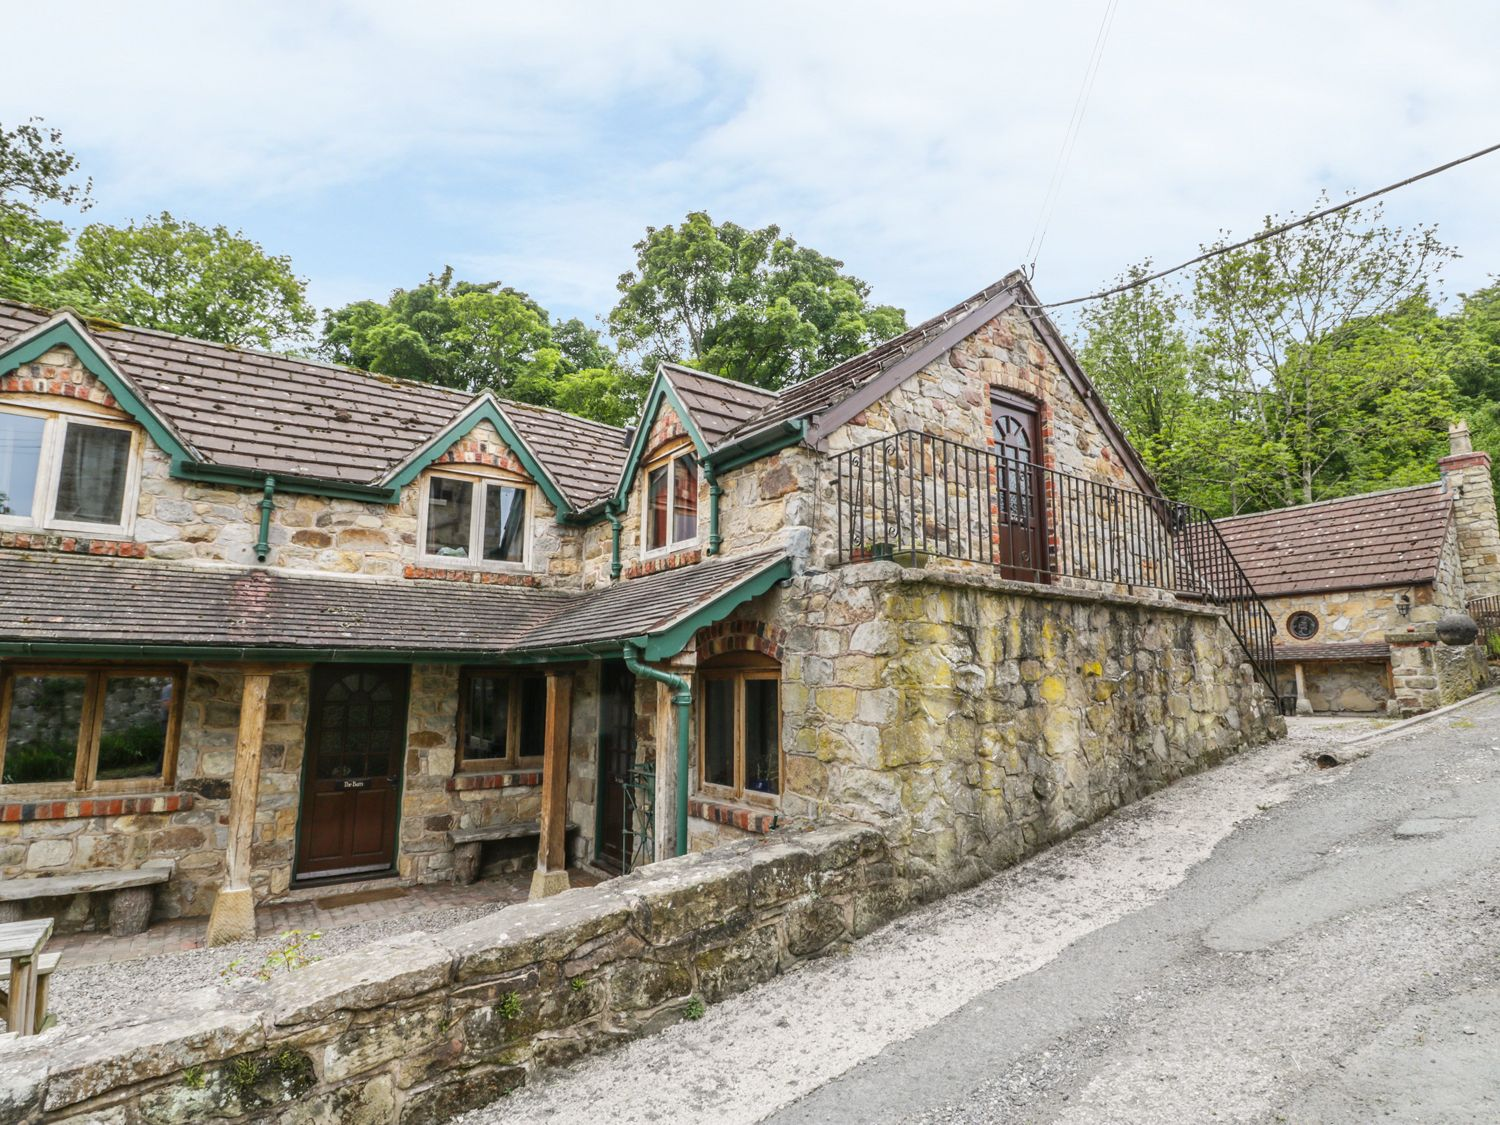 The Granary, North Wales